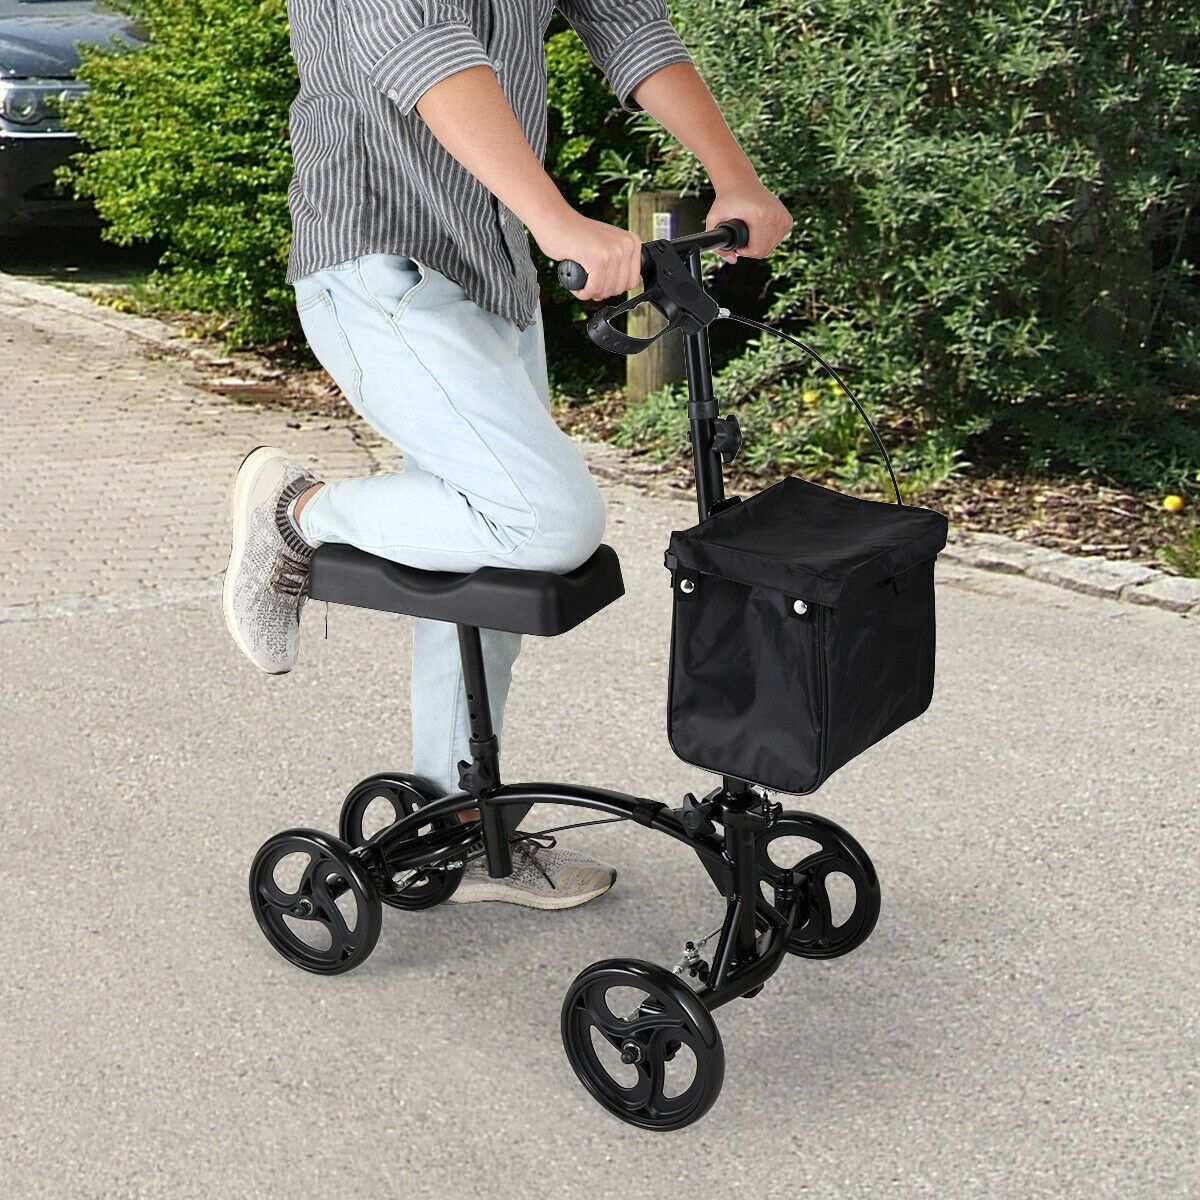 4 Wheel Steerable Knee Walker Scooter w/Storage Basket Adjustable Height